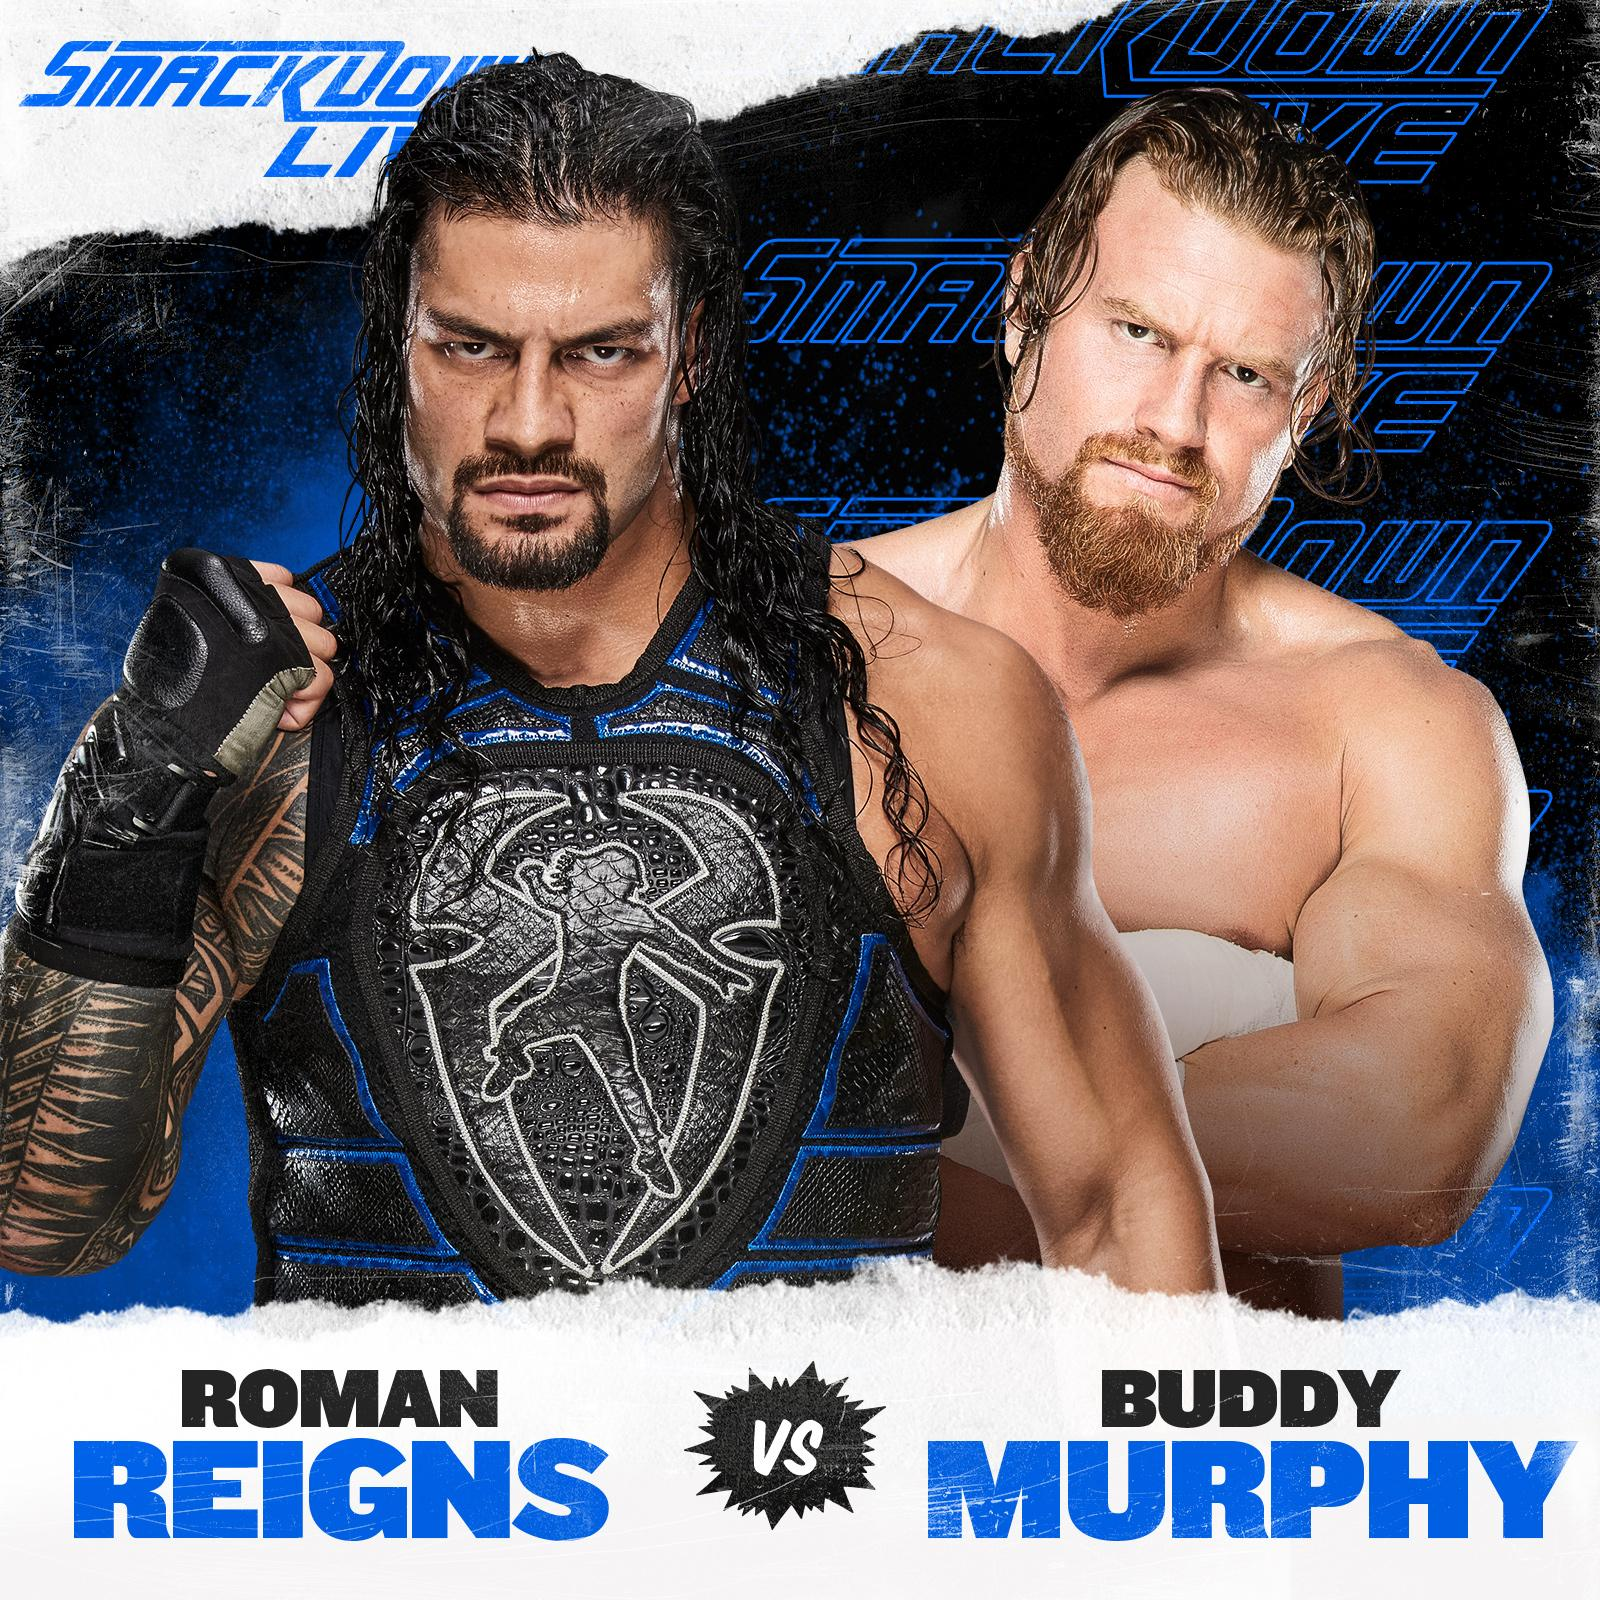 Roman Reigns vs Buddy Murphy